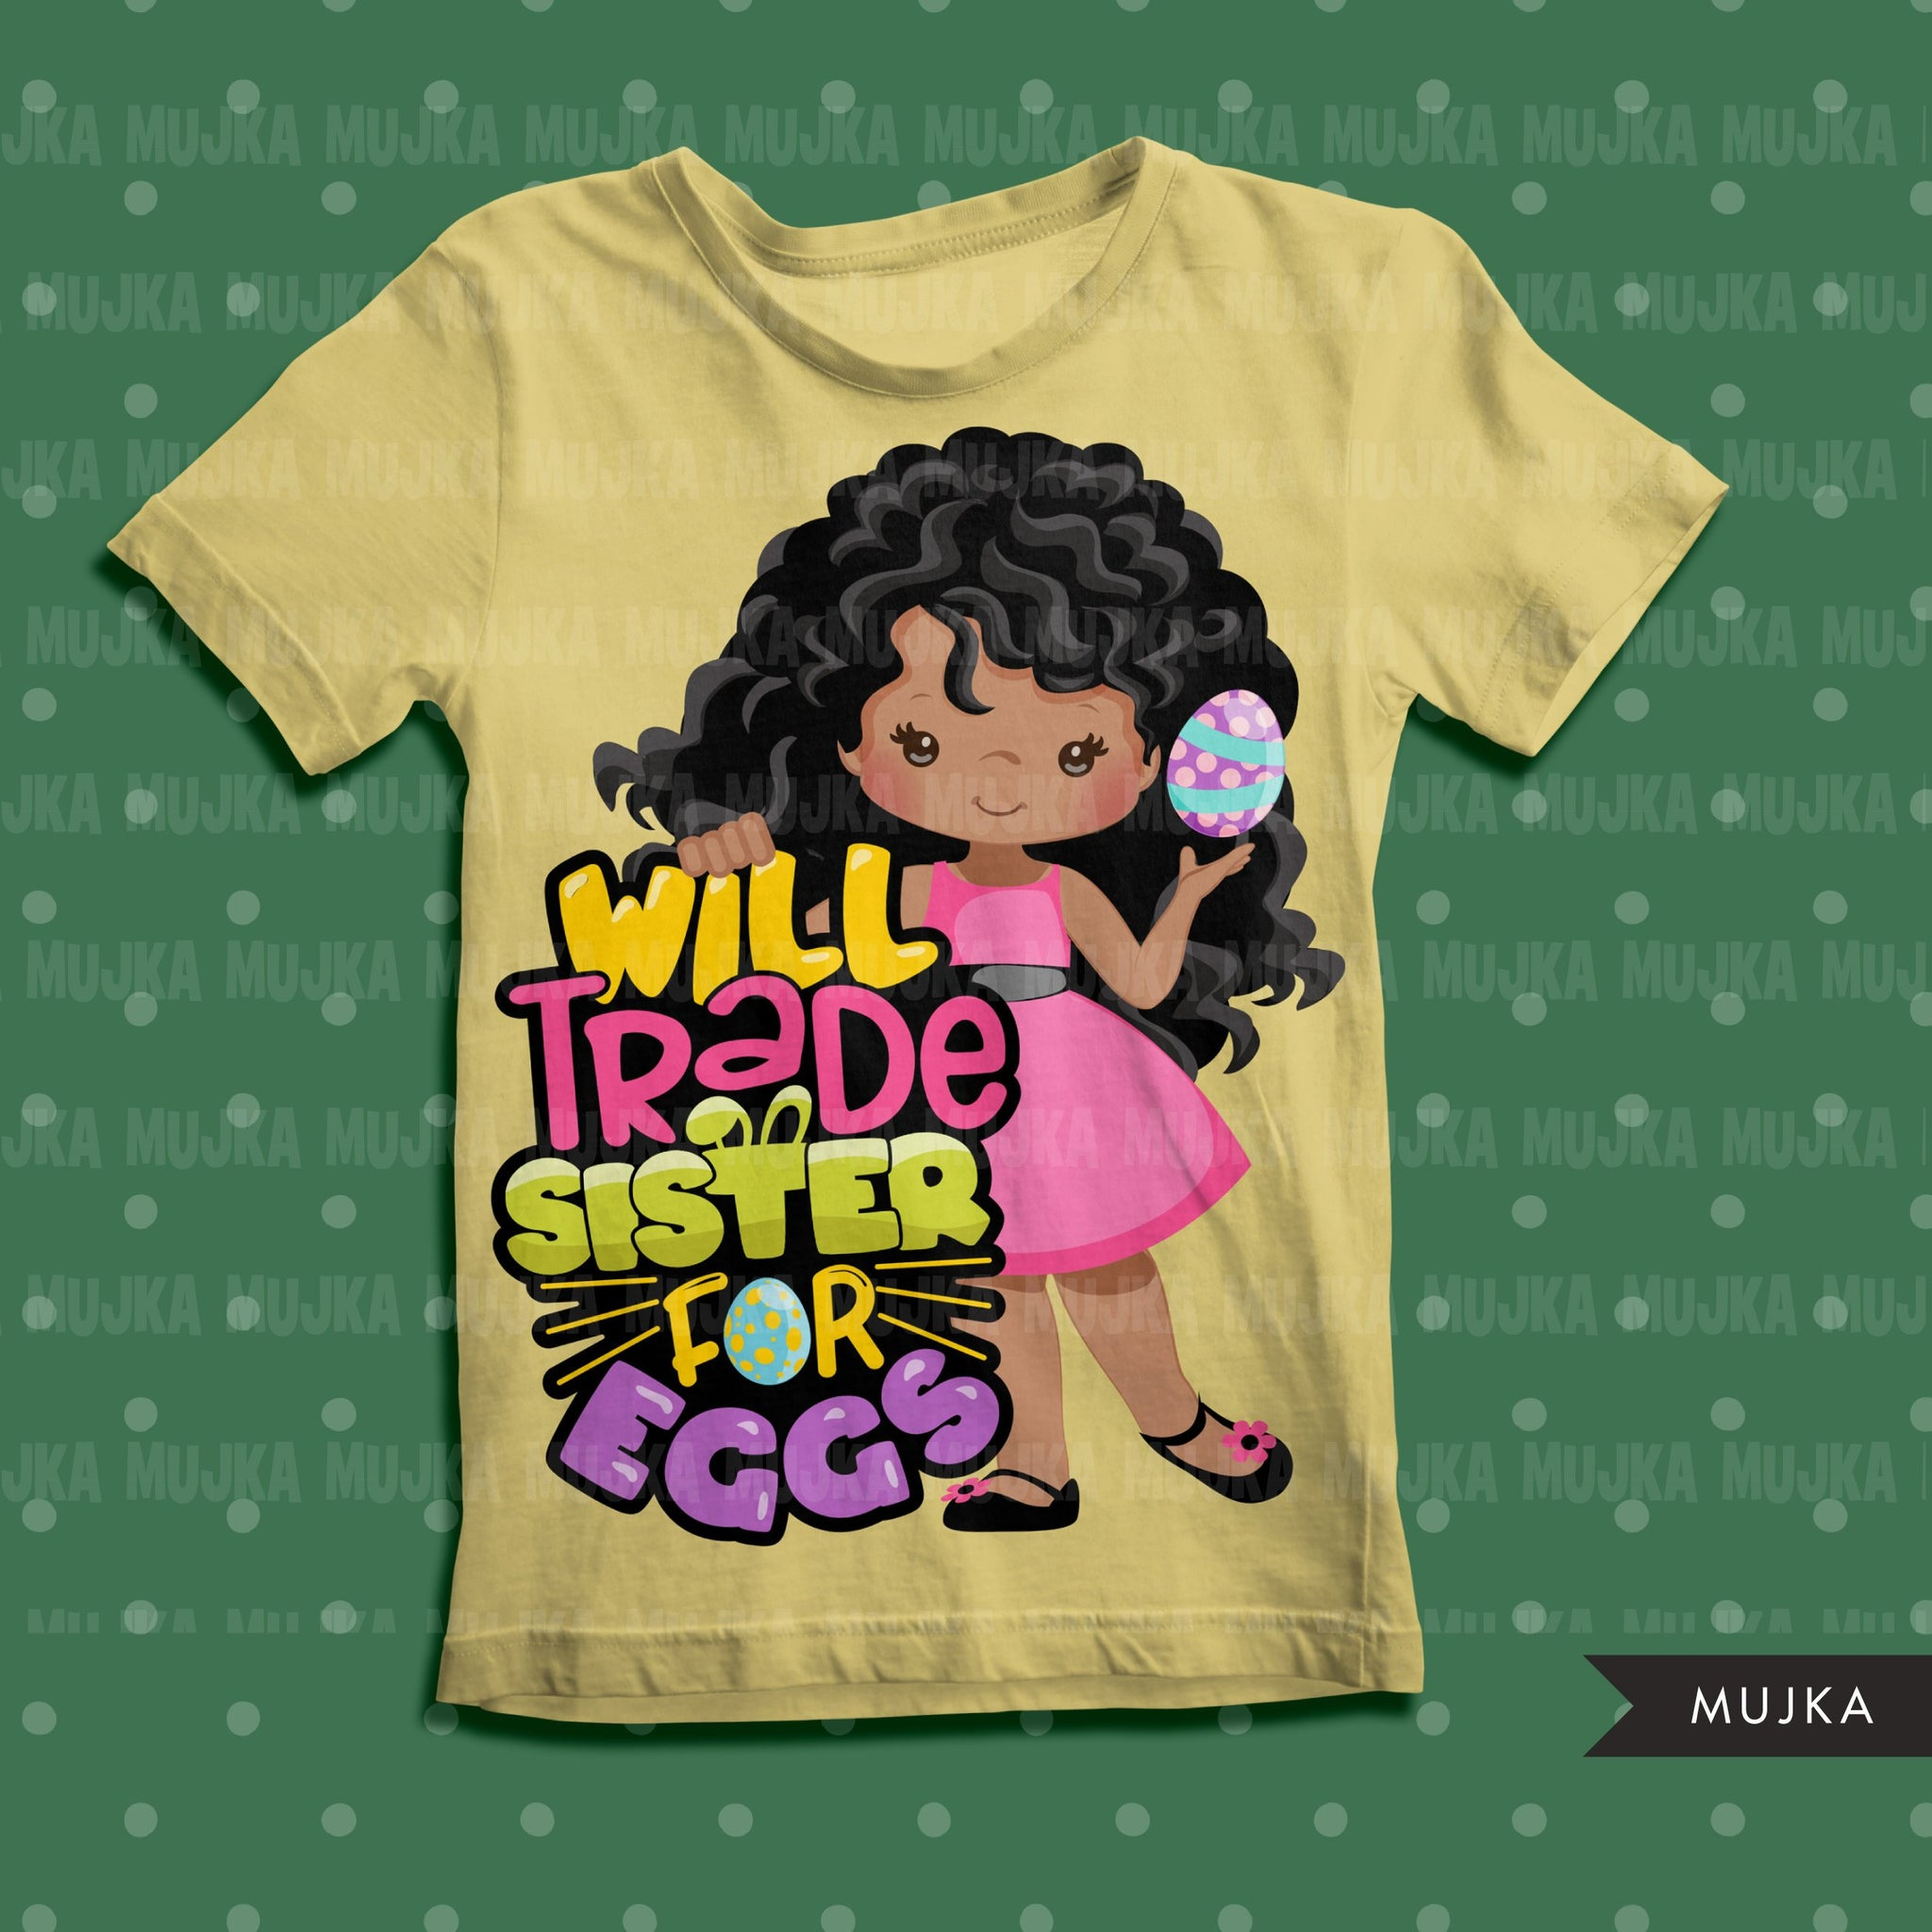 Easter PNG digital, Will trade sister for eggs Printable HTV sublimation image transfer clipart, t-shirt Afro black girls graphics